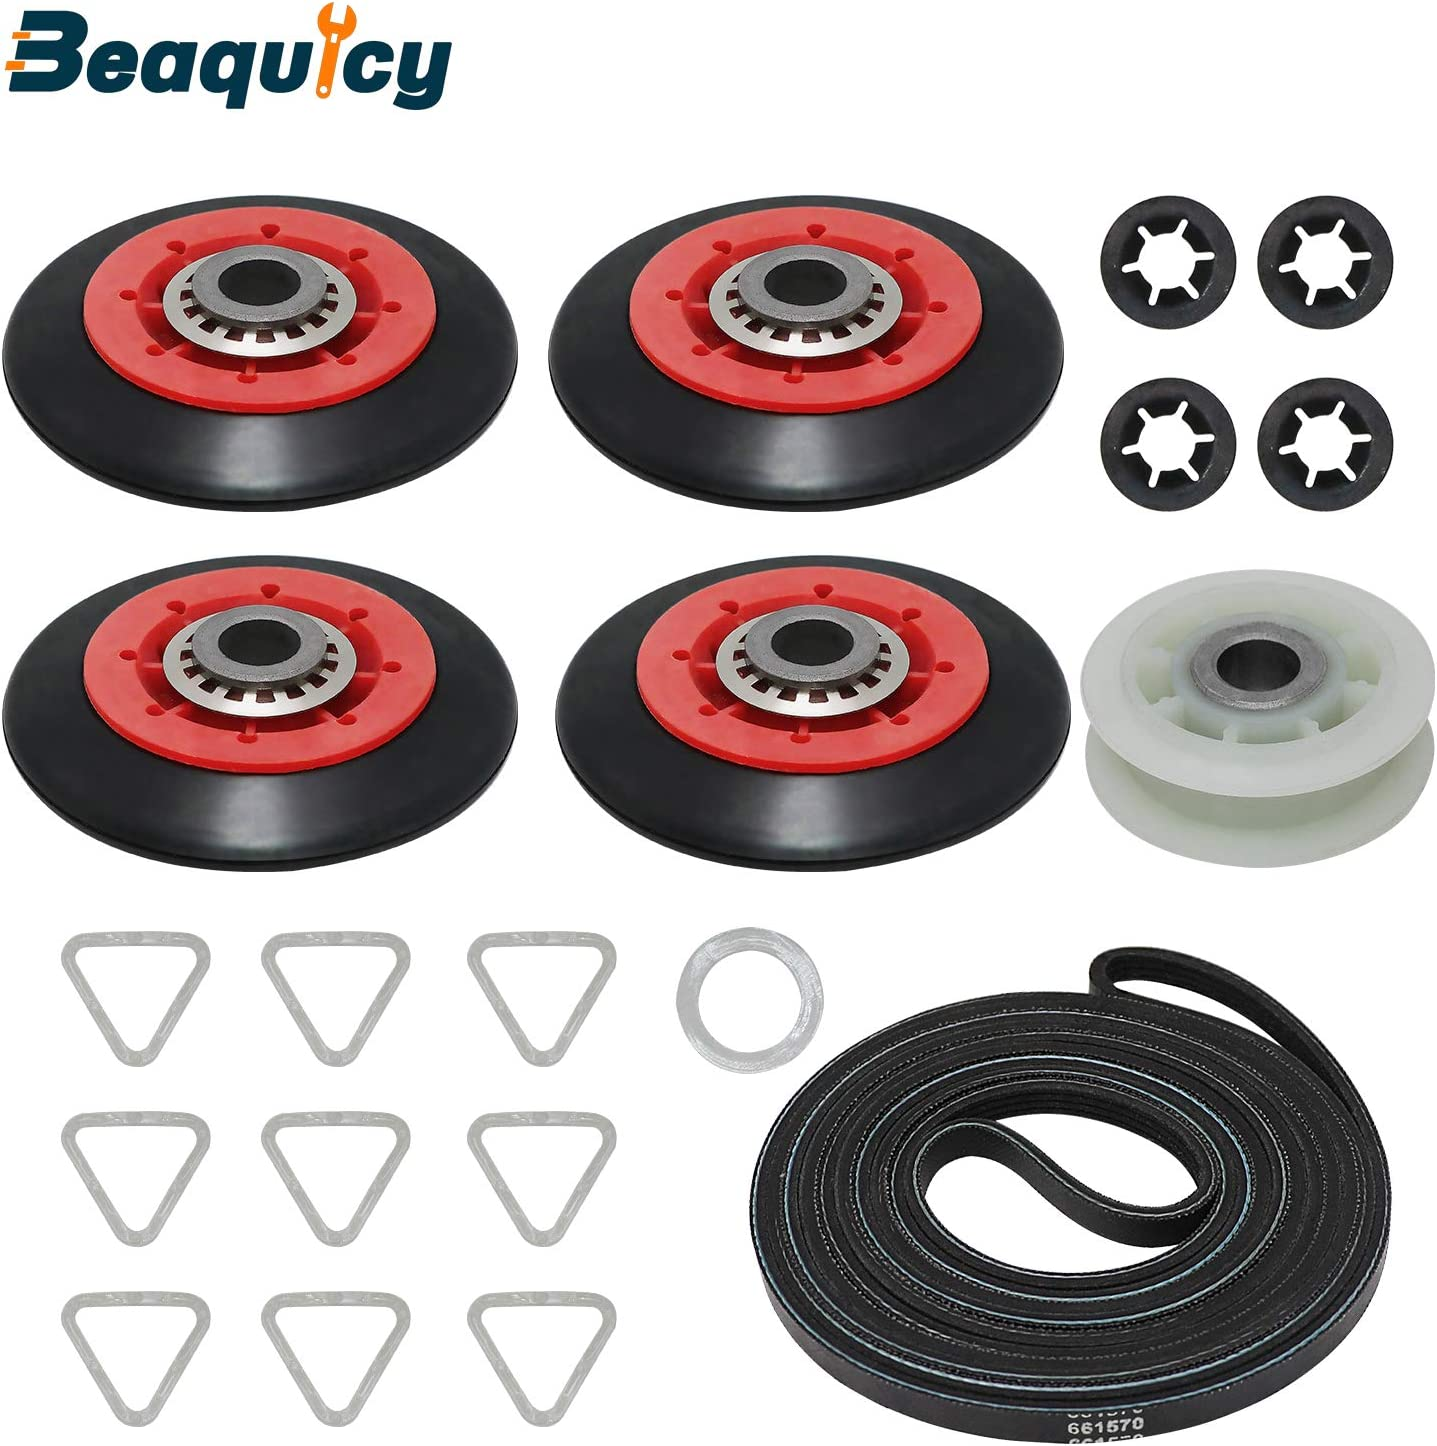 4392067 Dryer Maintenance Repair Kit by Beaquicy - Replacement for Whirlpool Kenmore Dryer